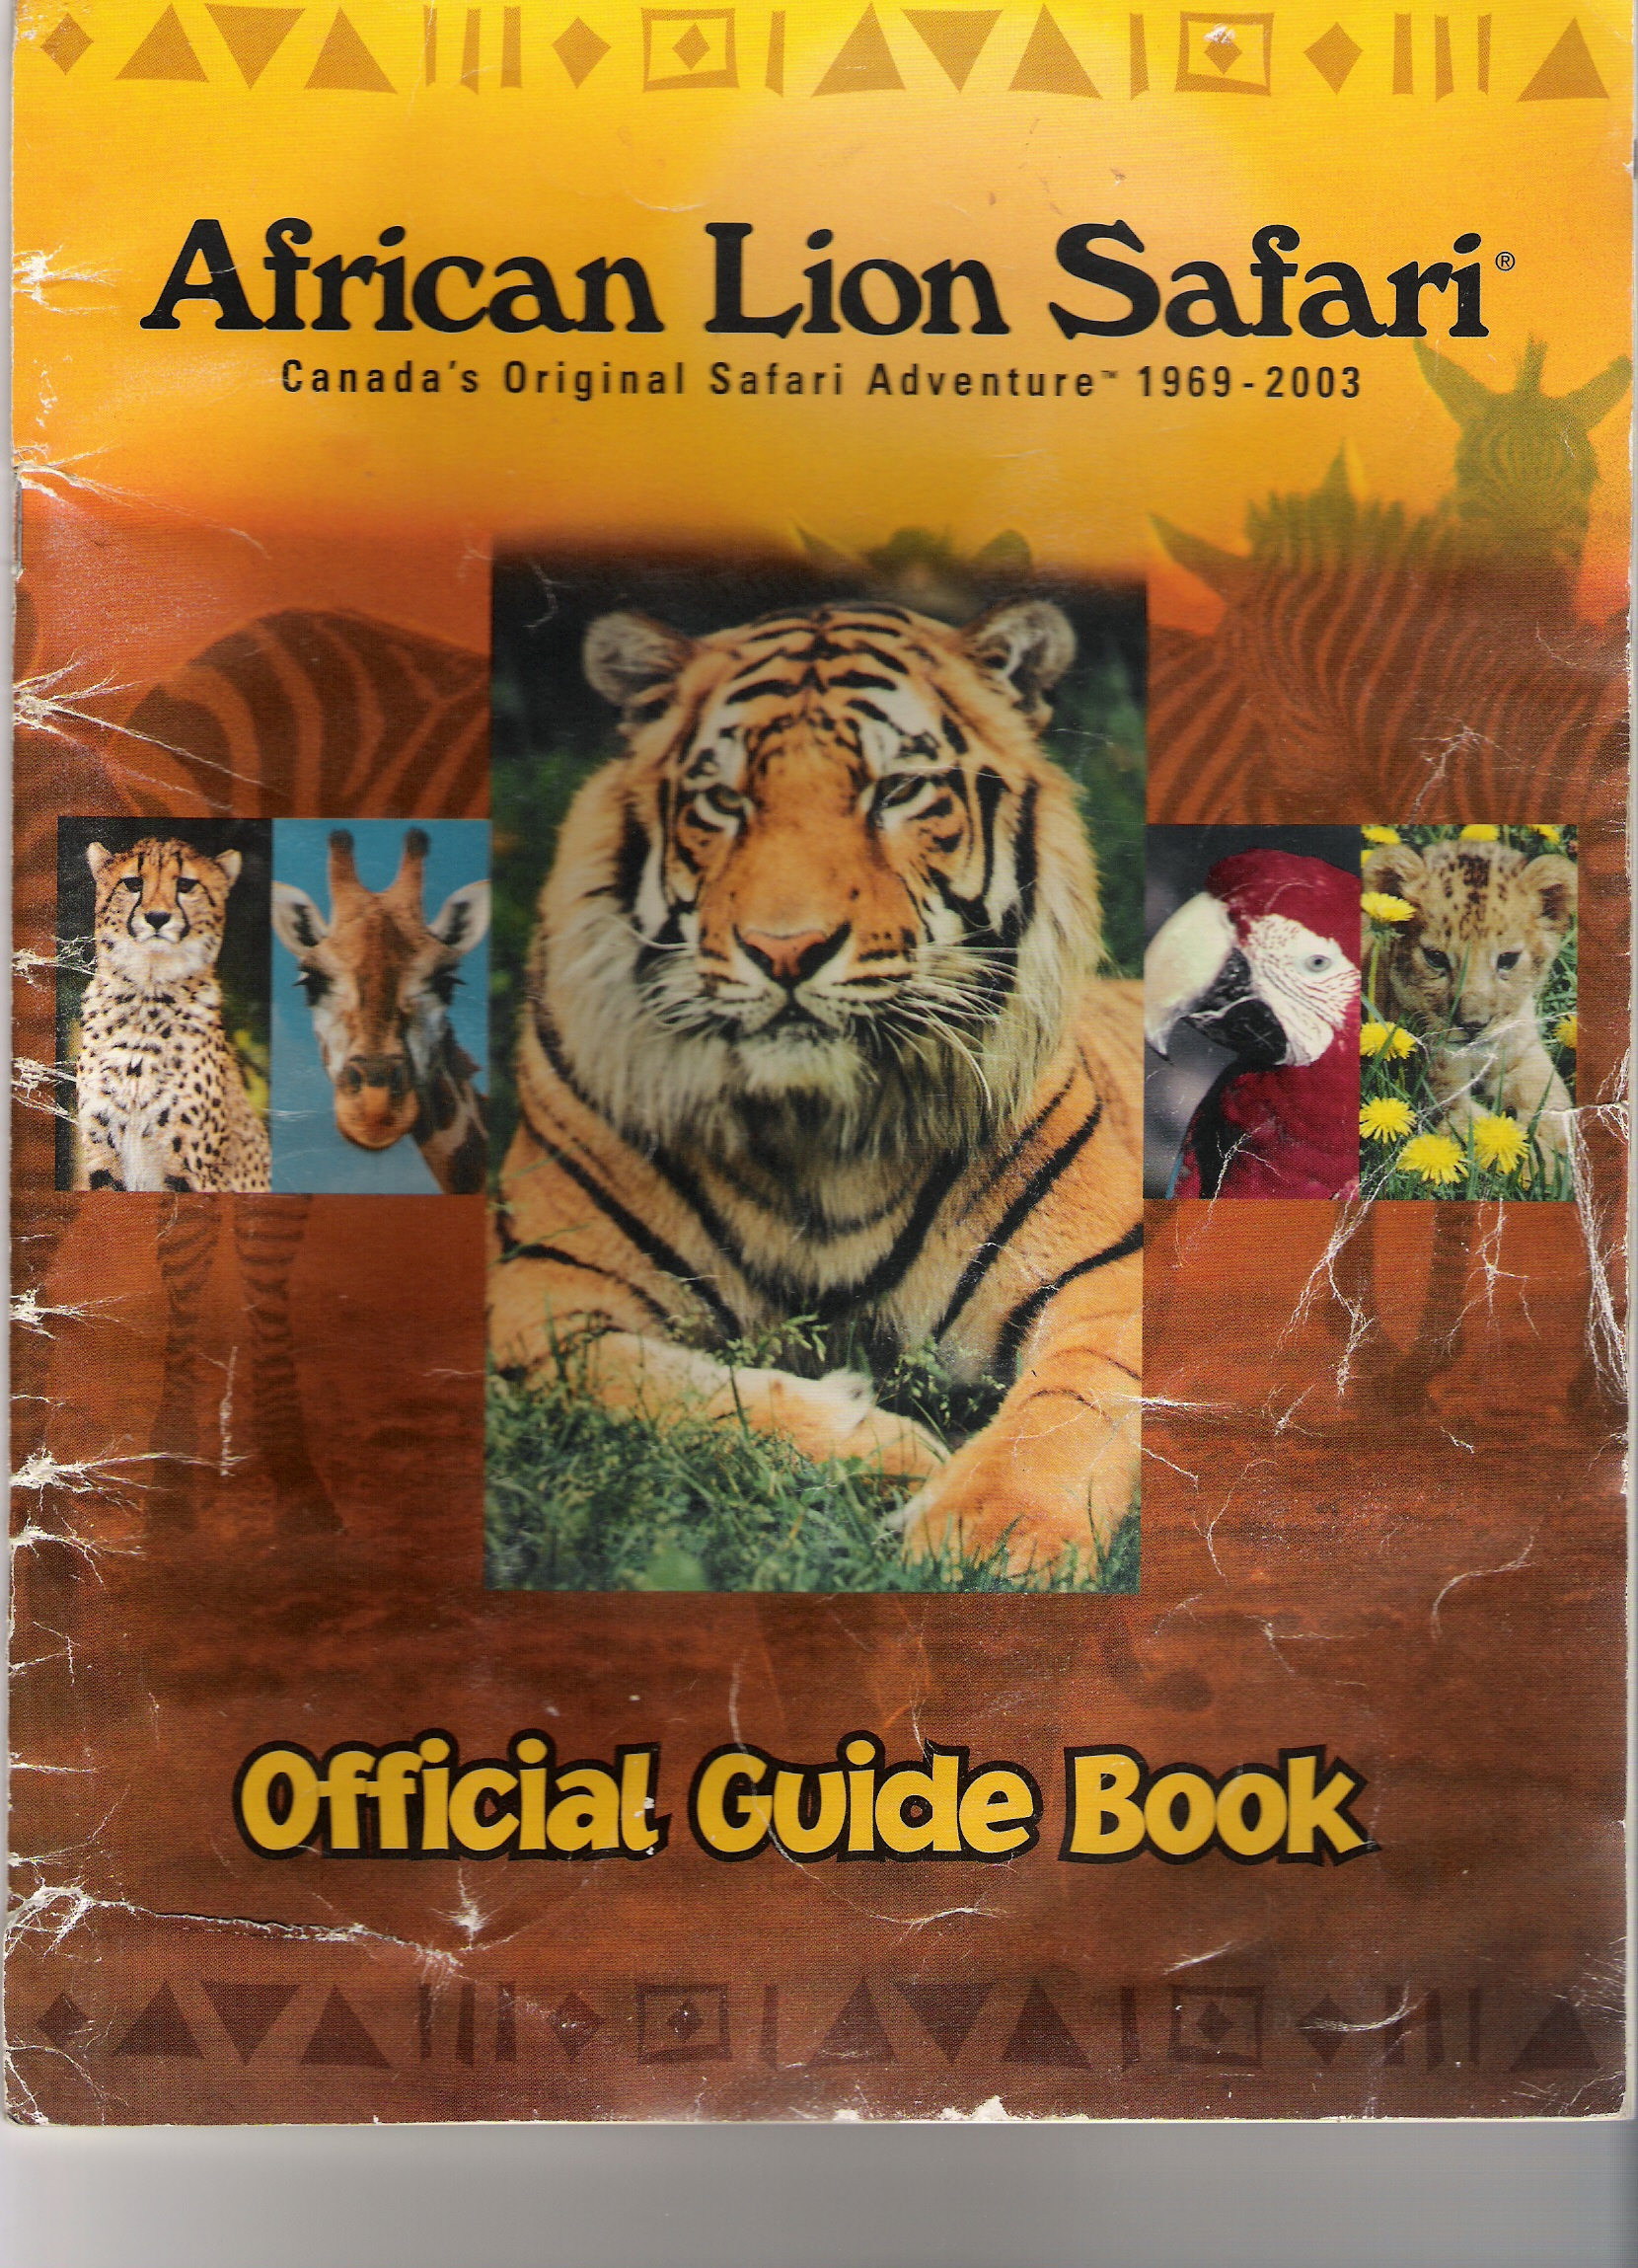 Offical Guide Book